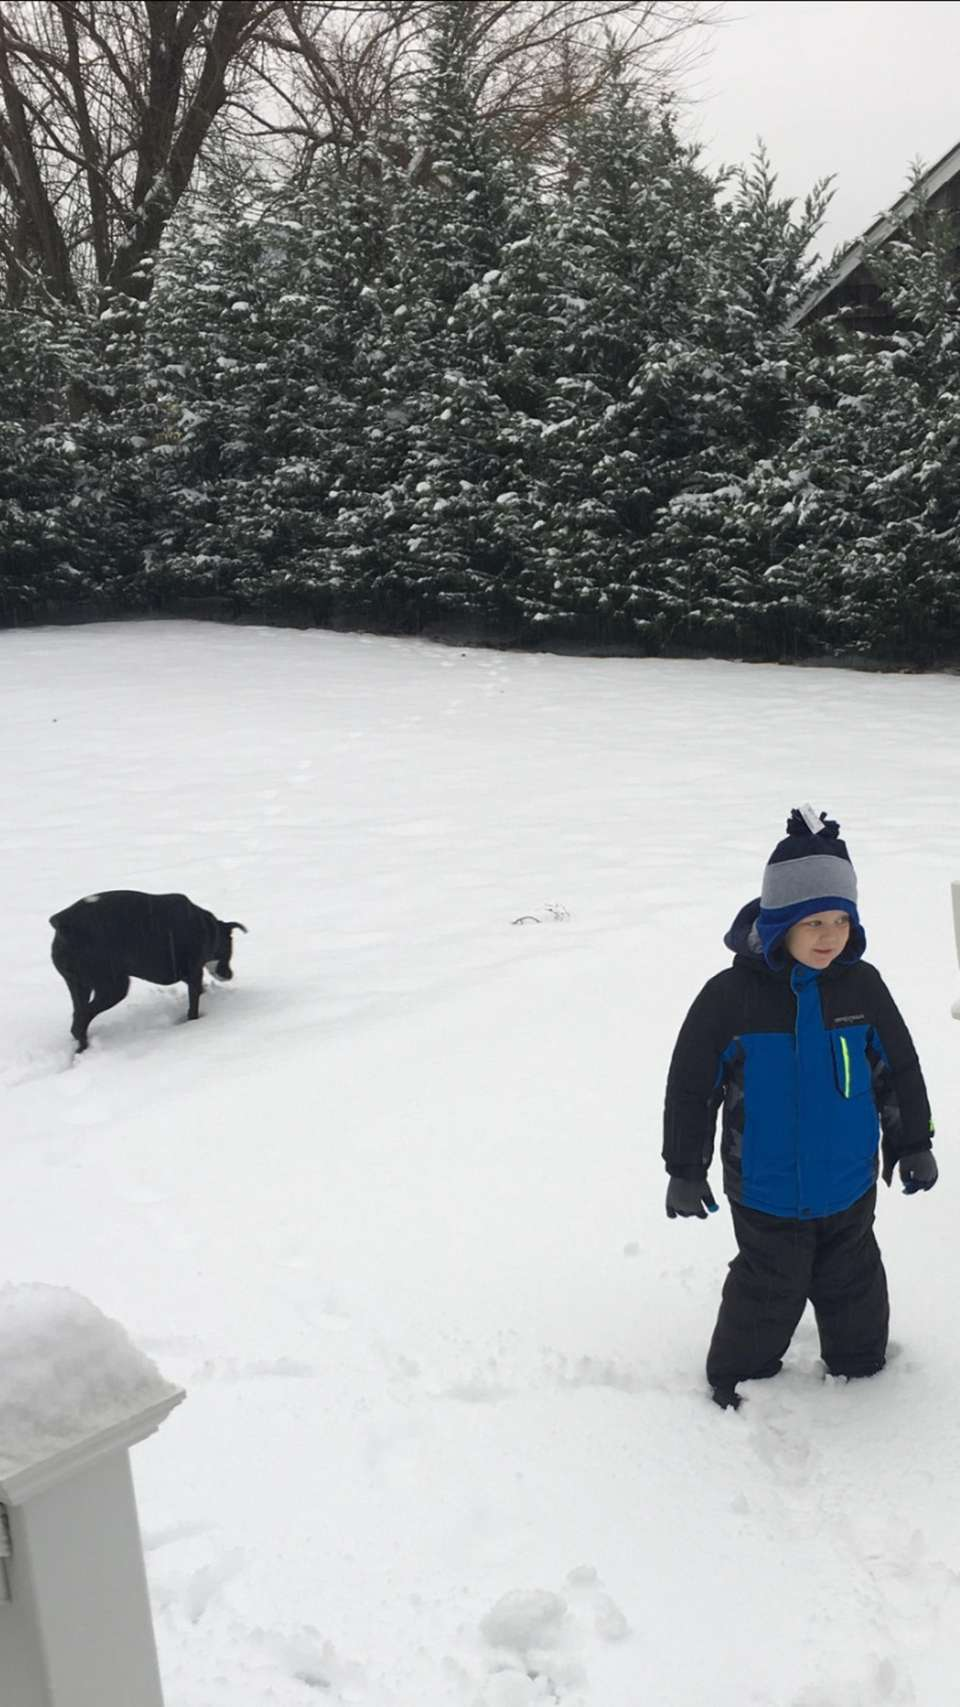 Declan throwing snowballs to Molly